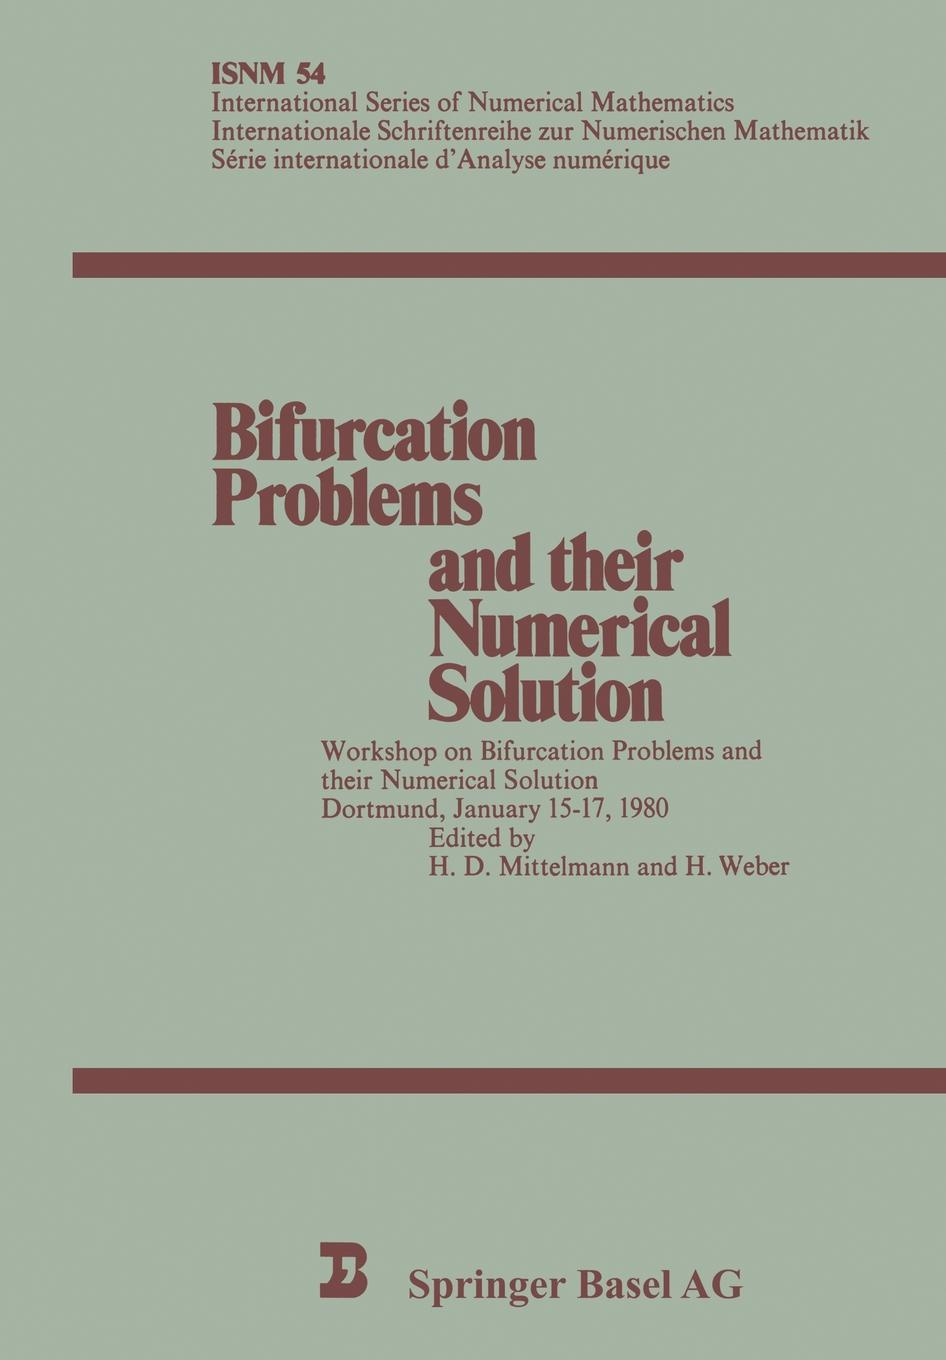 H. D. Mittelmann, H. Weber Bifurcation Problems and Their Numerical Solution. Workshop on Bifurcation Problems and Their Numerical Solution Dortmund, January 15 17, 1980 waksman dr ron bifurcation stenting